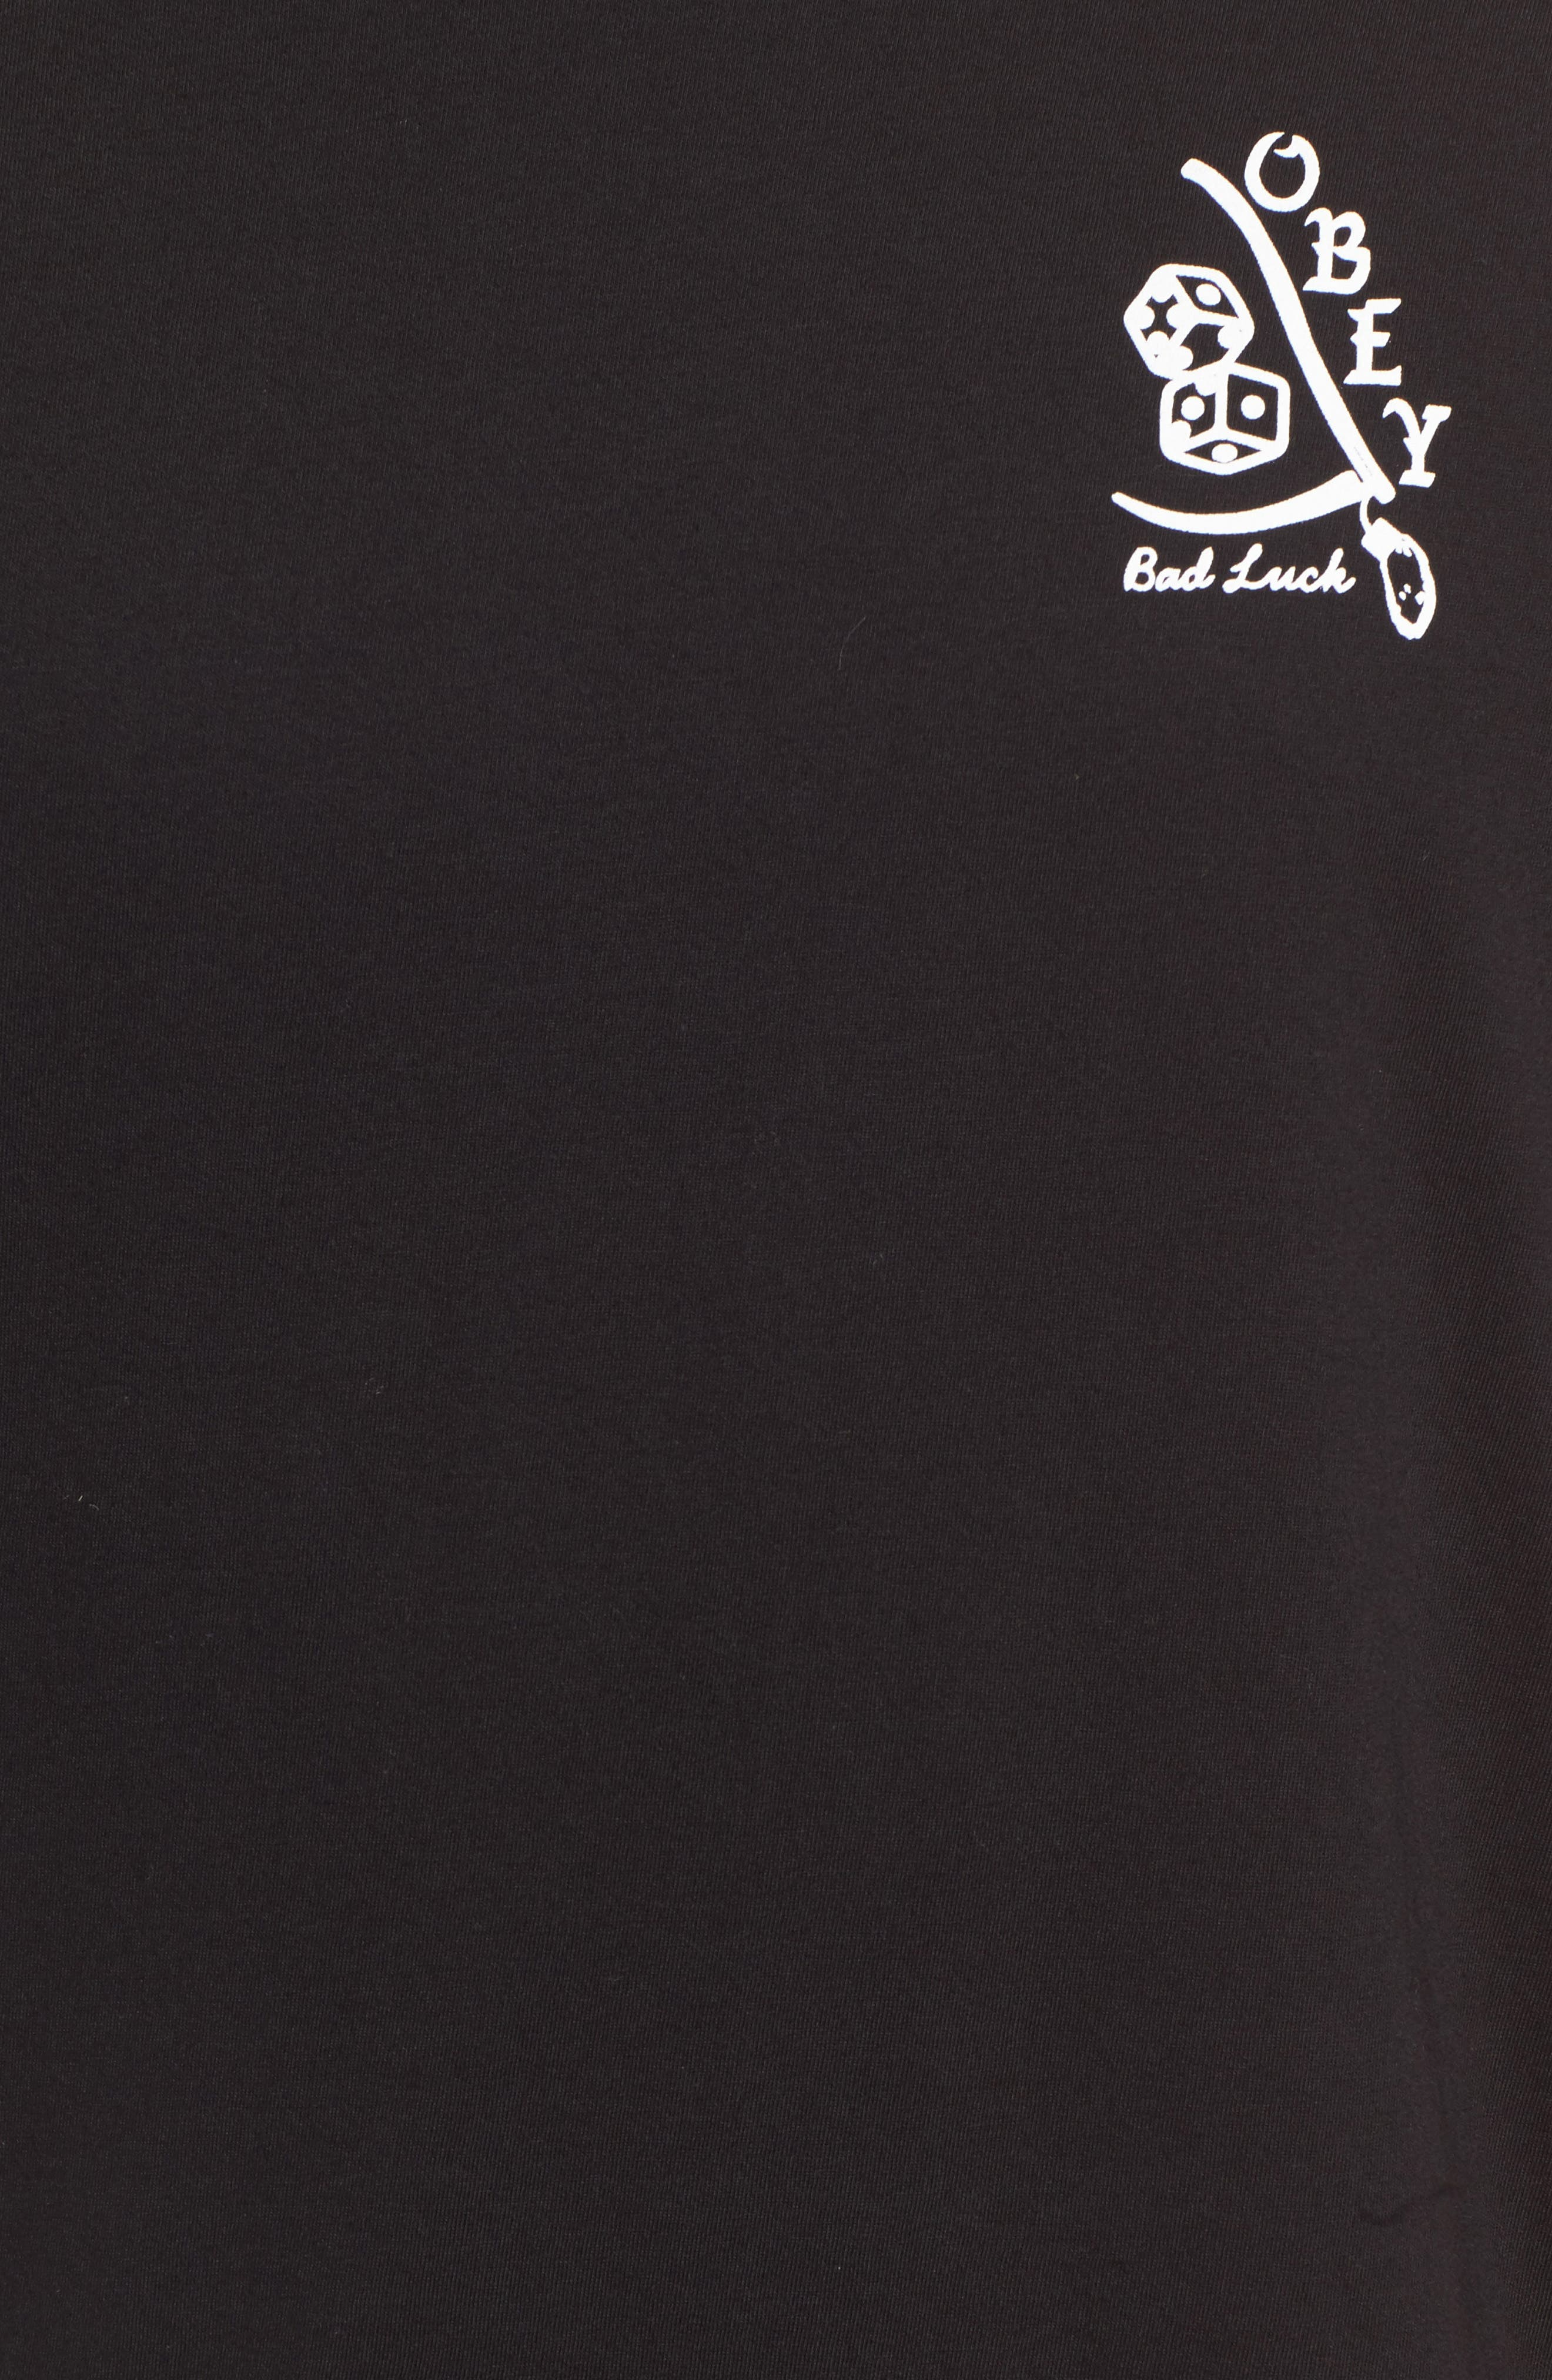 Bad Luck Graphic T-Shirt,                             Alternate thumbnail 5, color,                             001